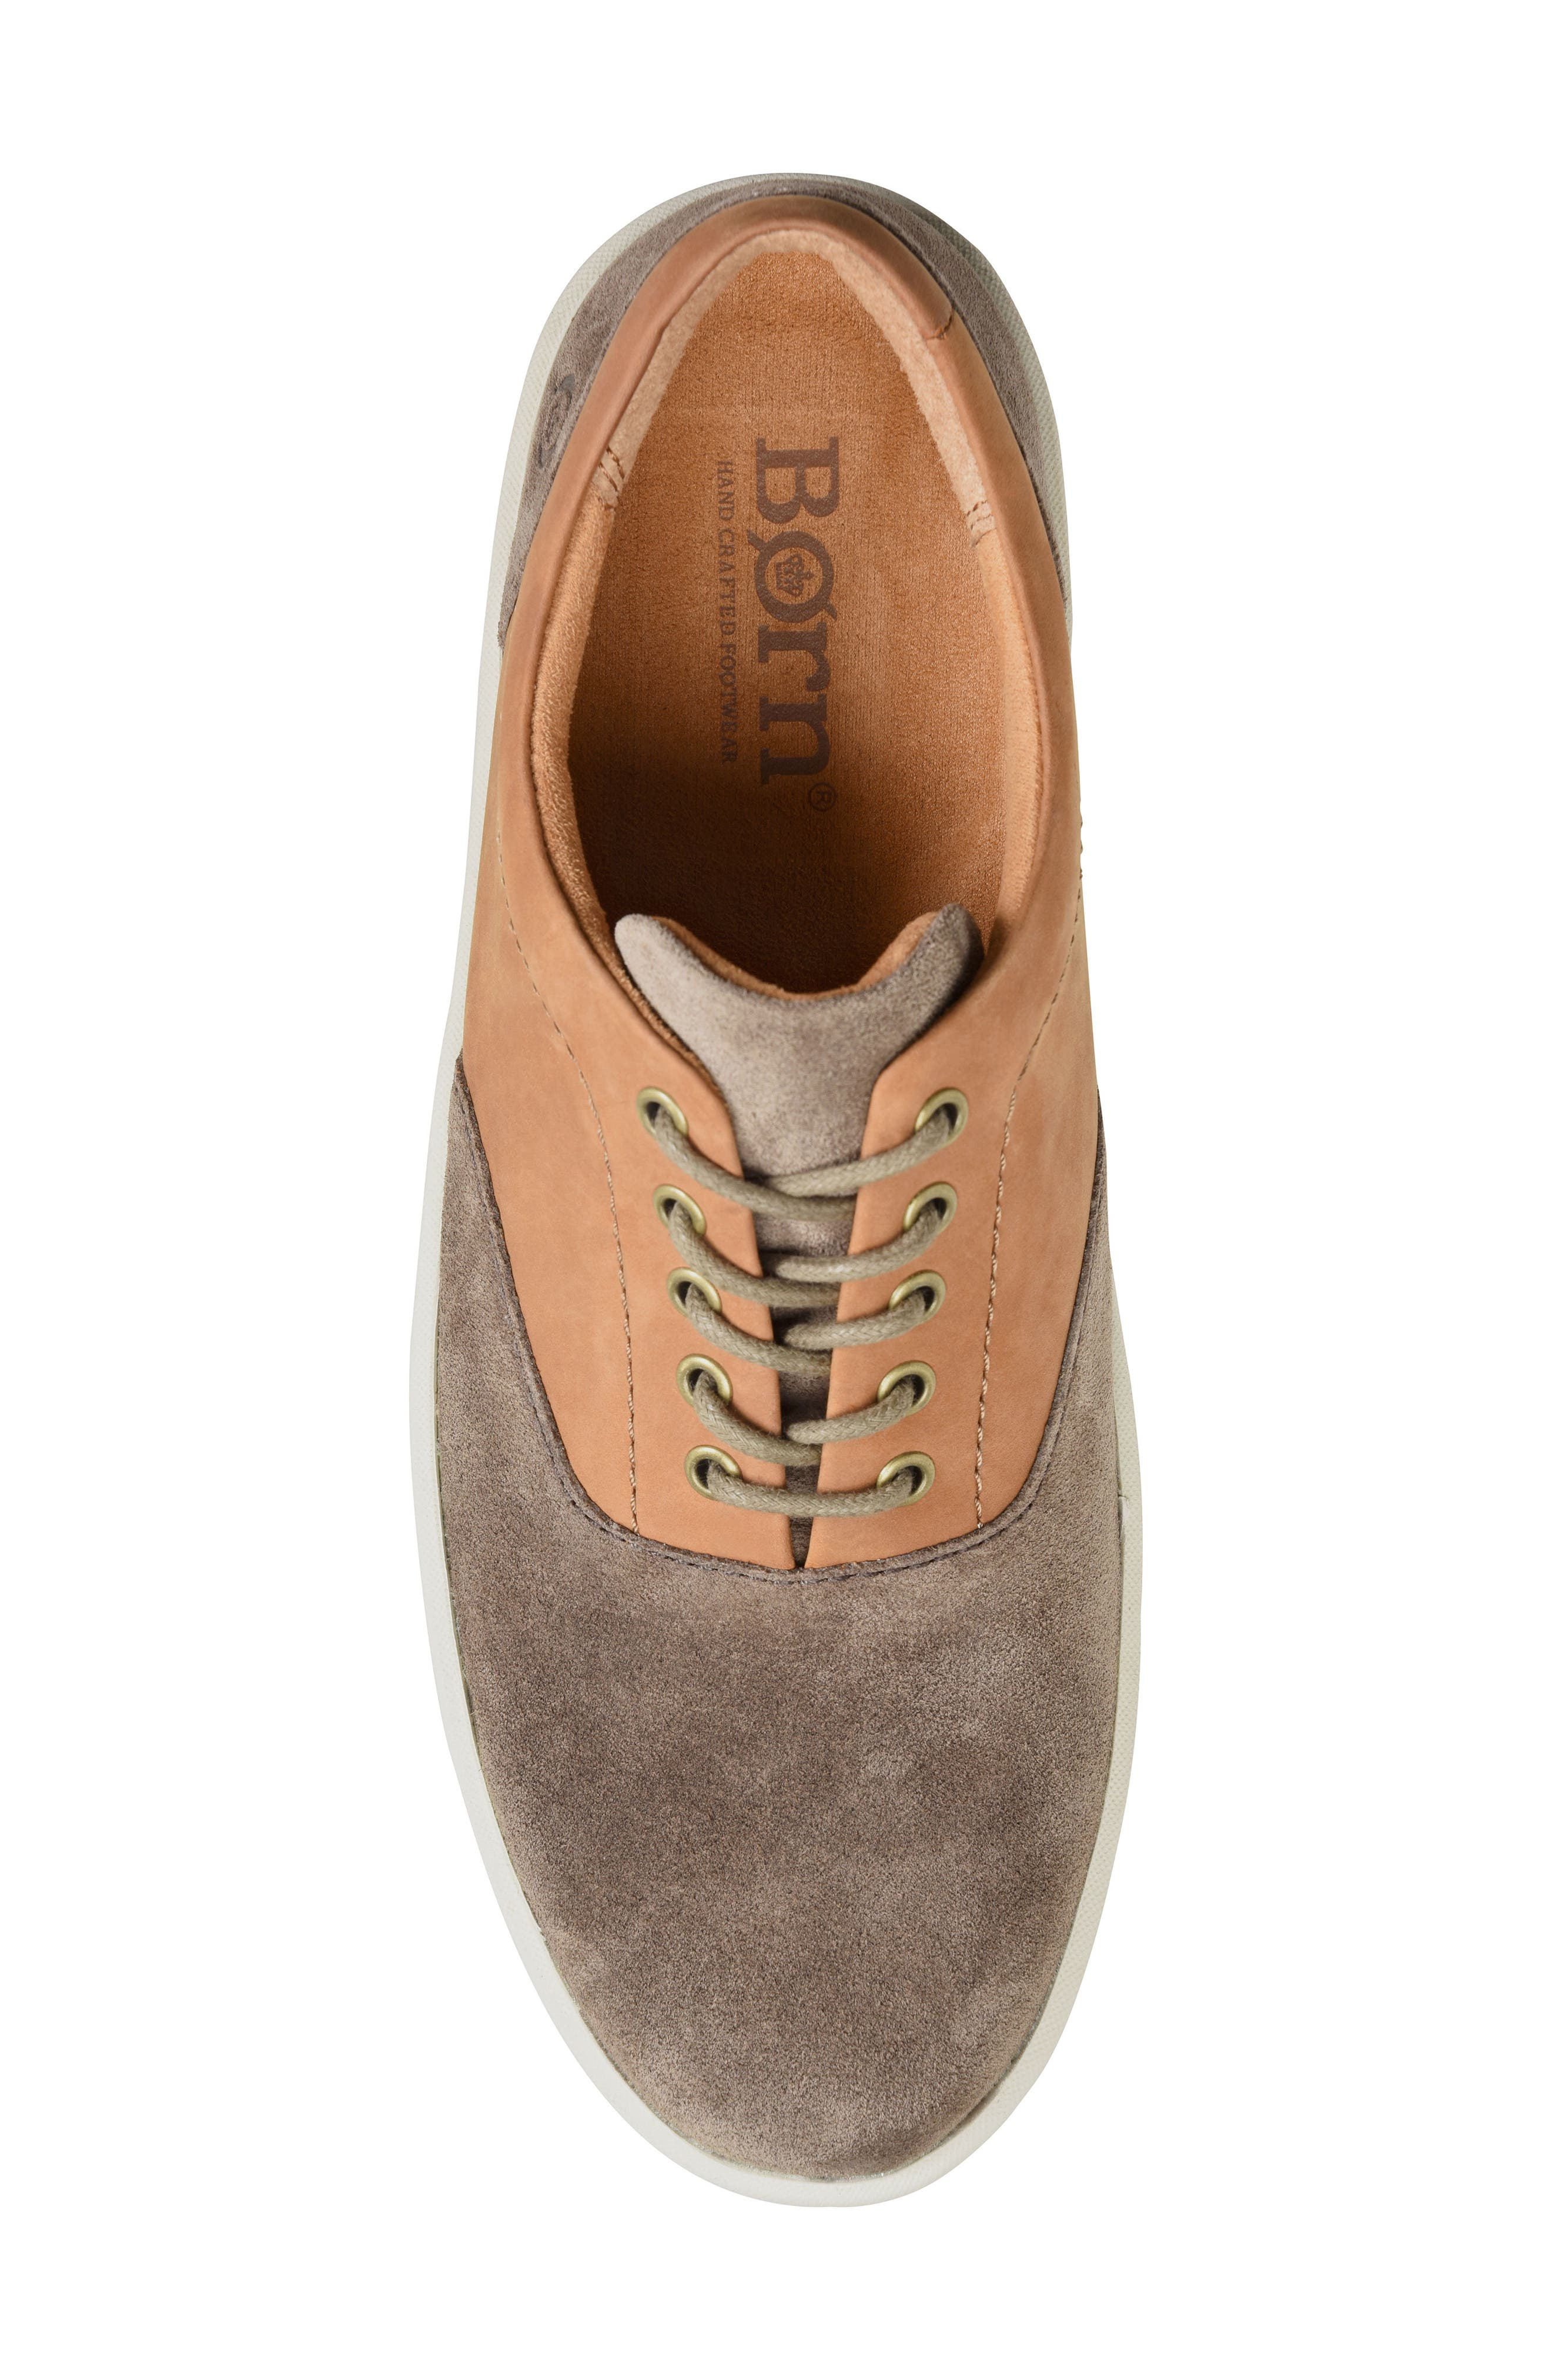 Keystone Low Top Sneaker,                             Alternate thumbnail 5, color,                             Taupe Leather